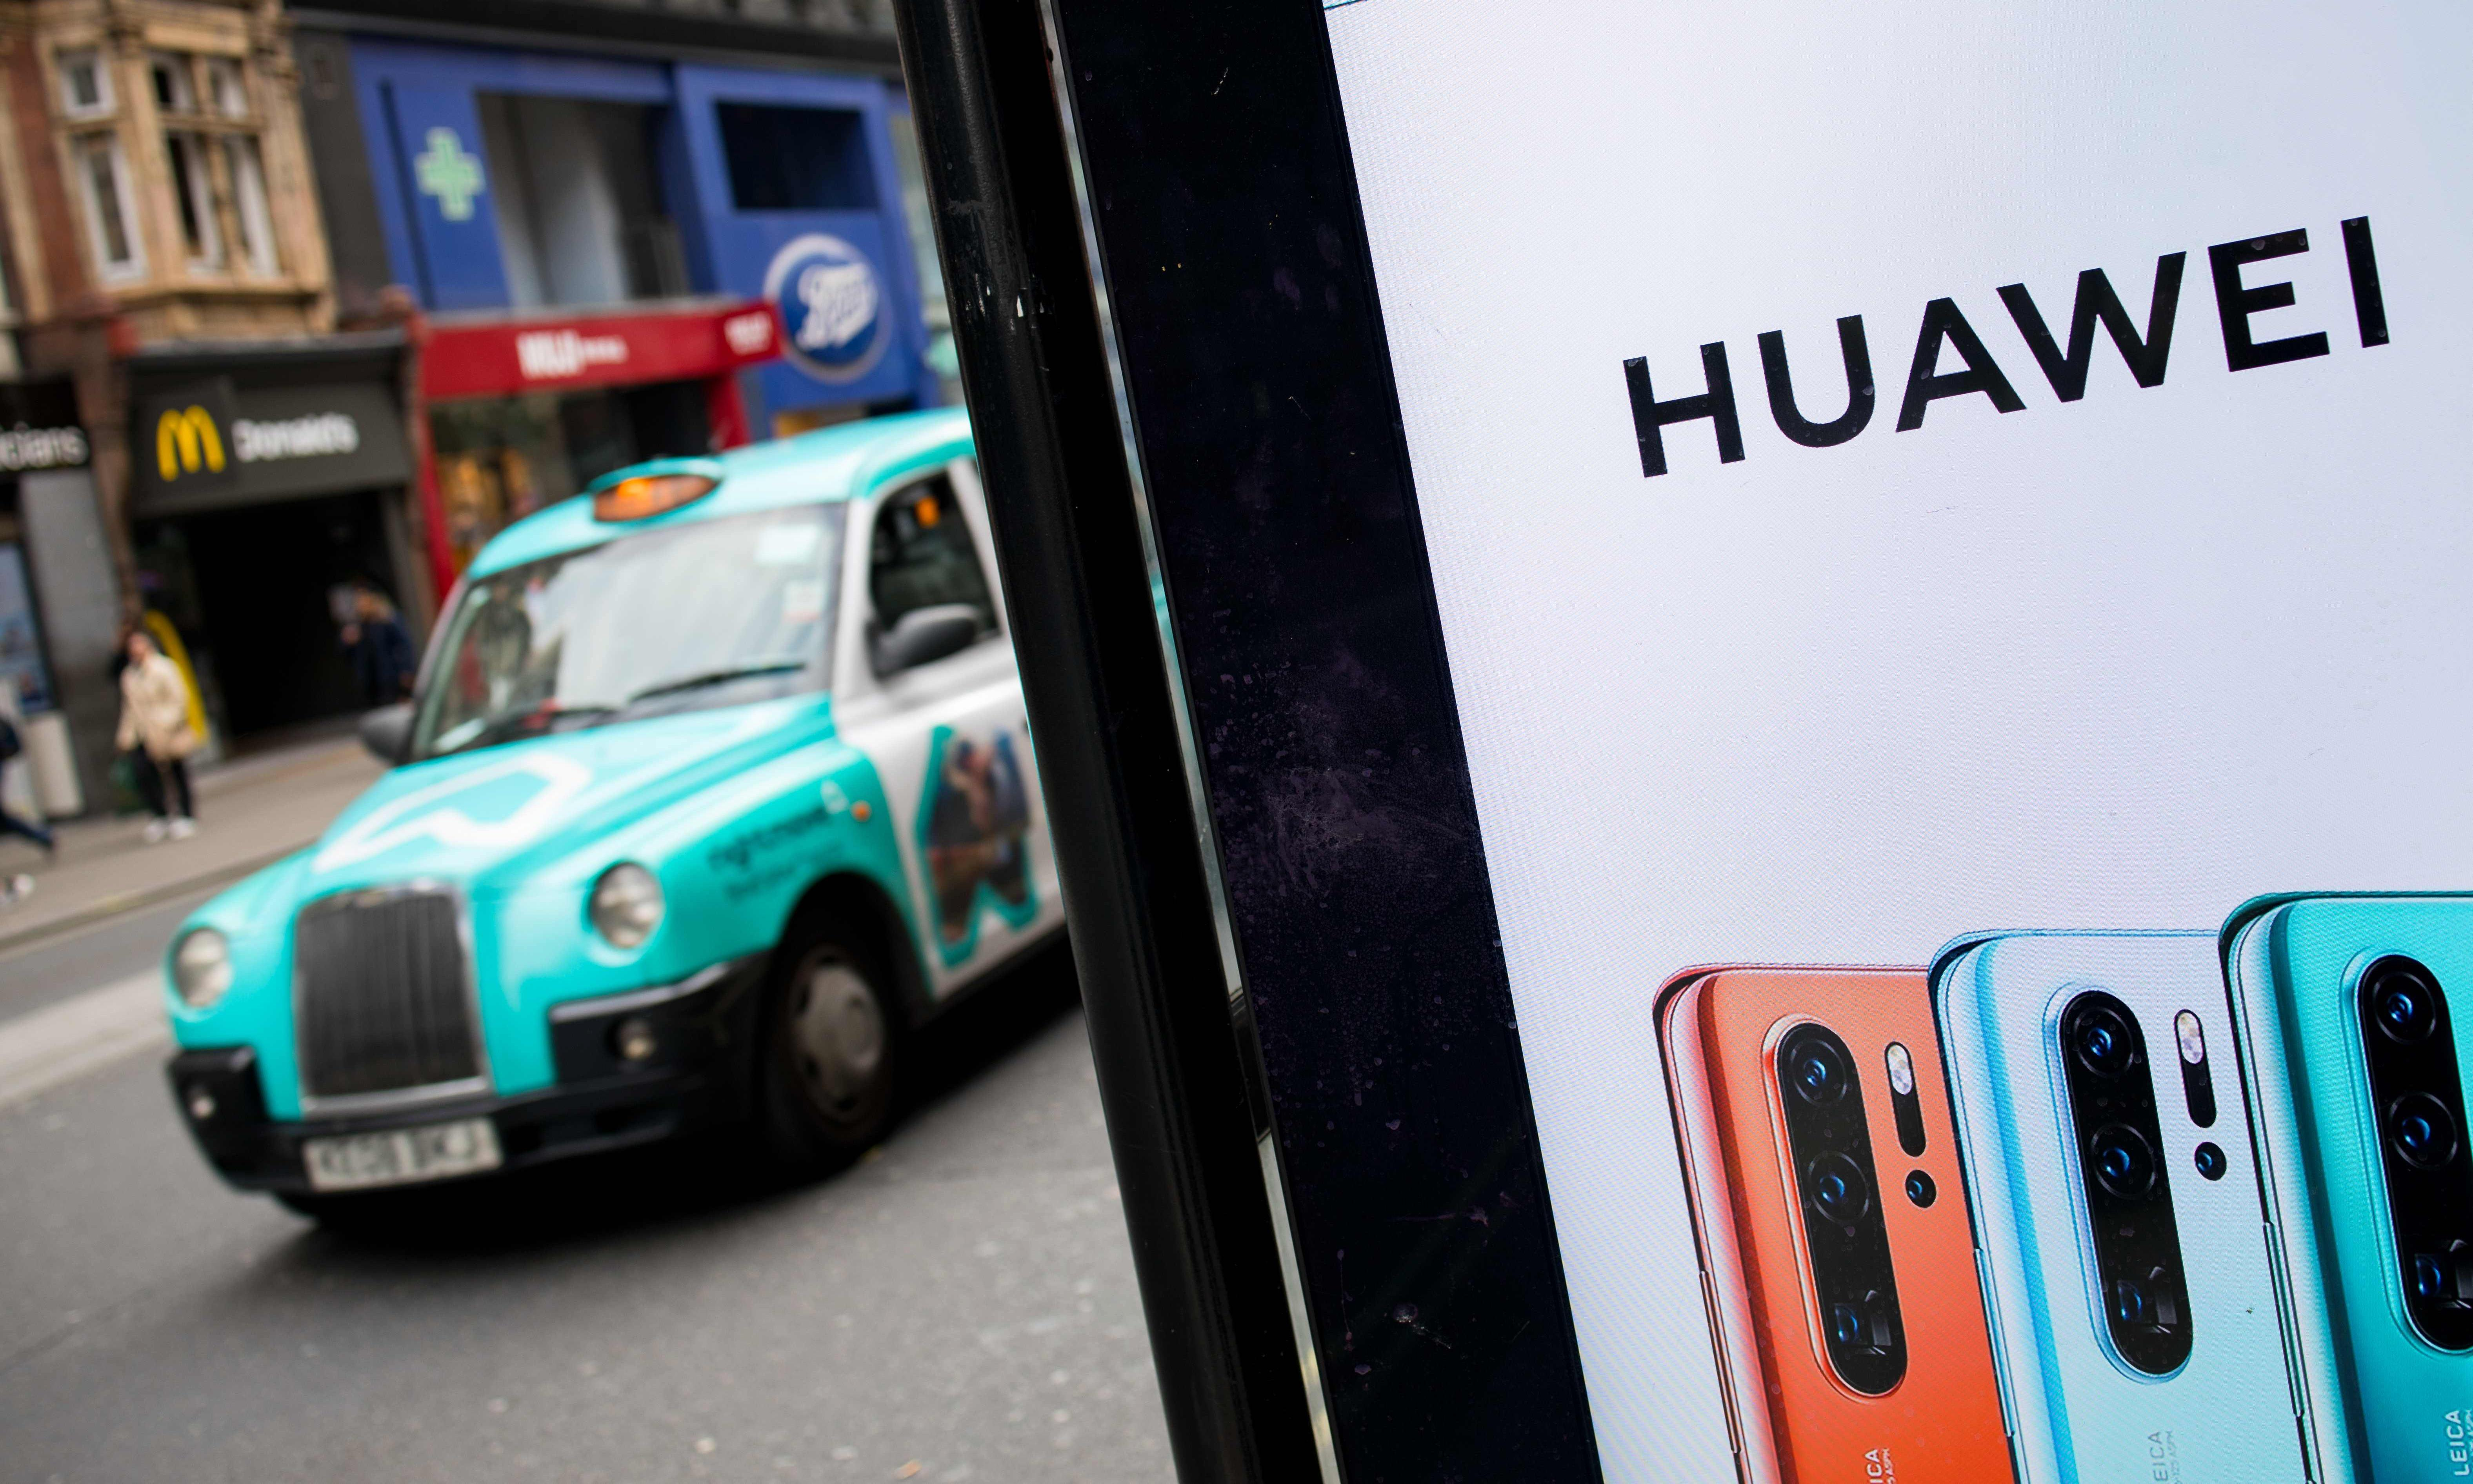 Huawei 'prepared to sign no-spy agreement with UK government'